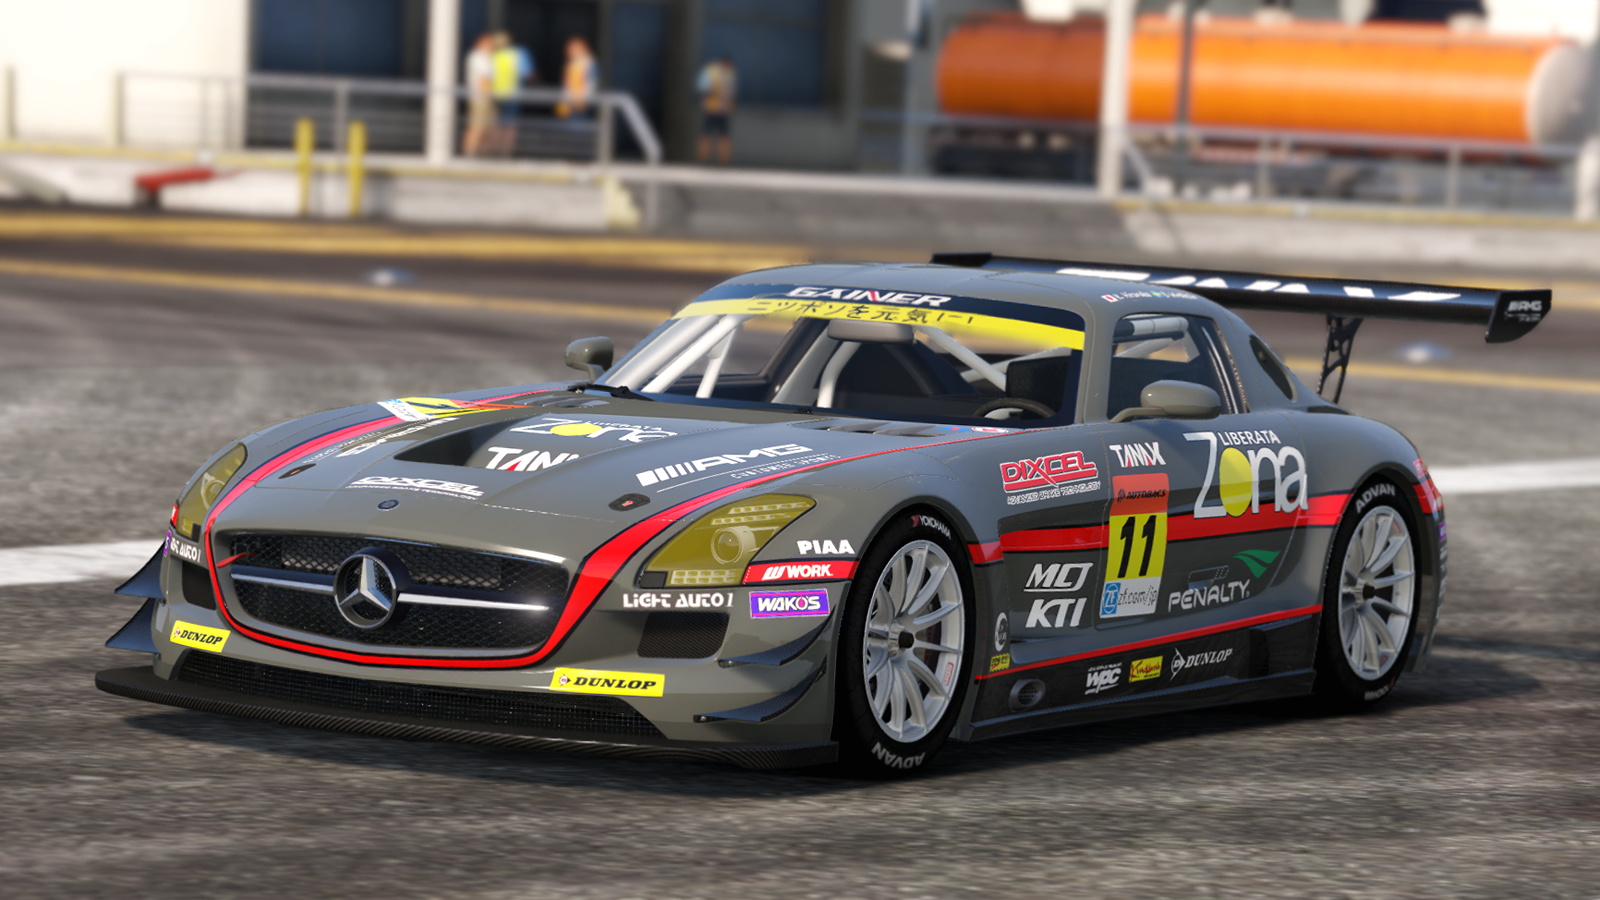 Mercedes benz sls amg gt3 add on replace livery for Mercedes benz gt3